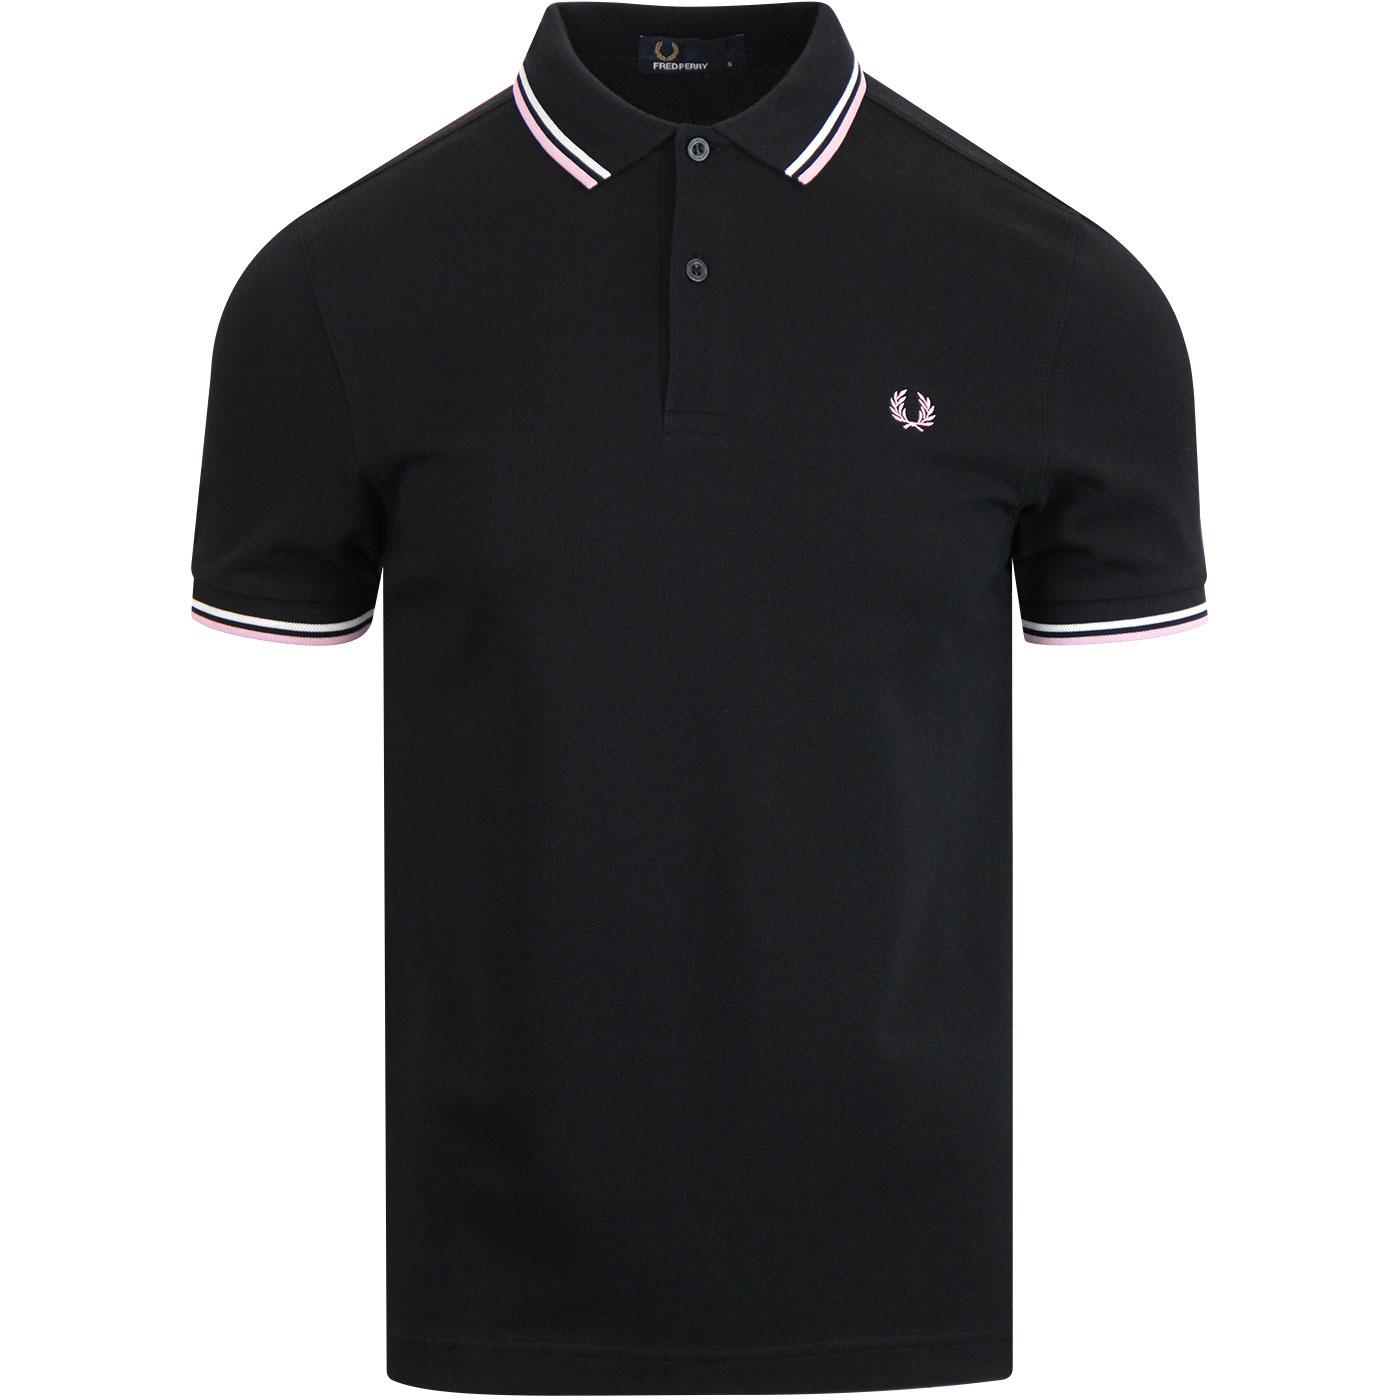 FRED PERRY M3600 Twin Tipped Mod Polo Shirt BLACK